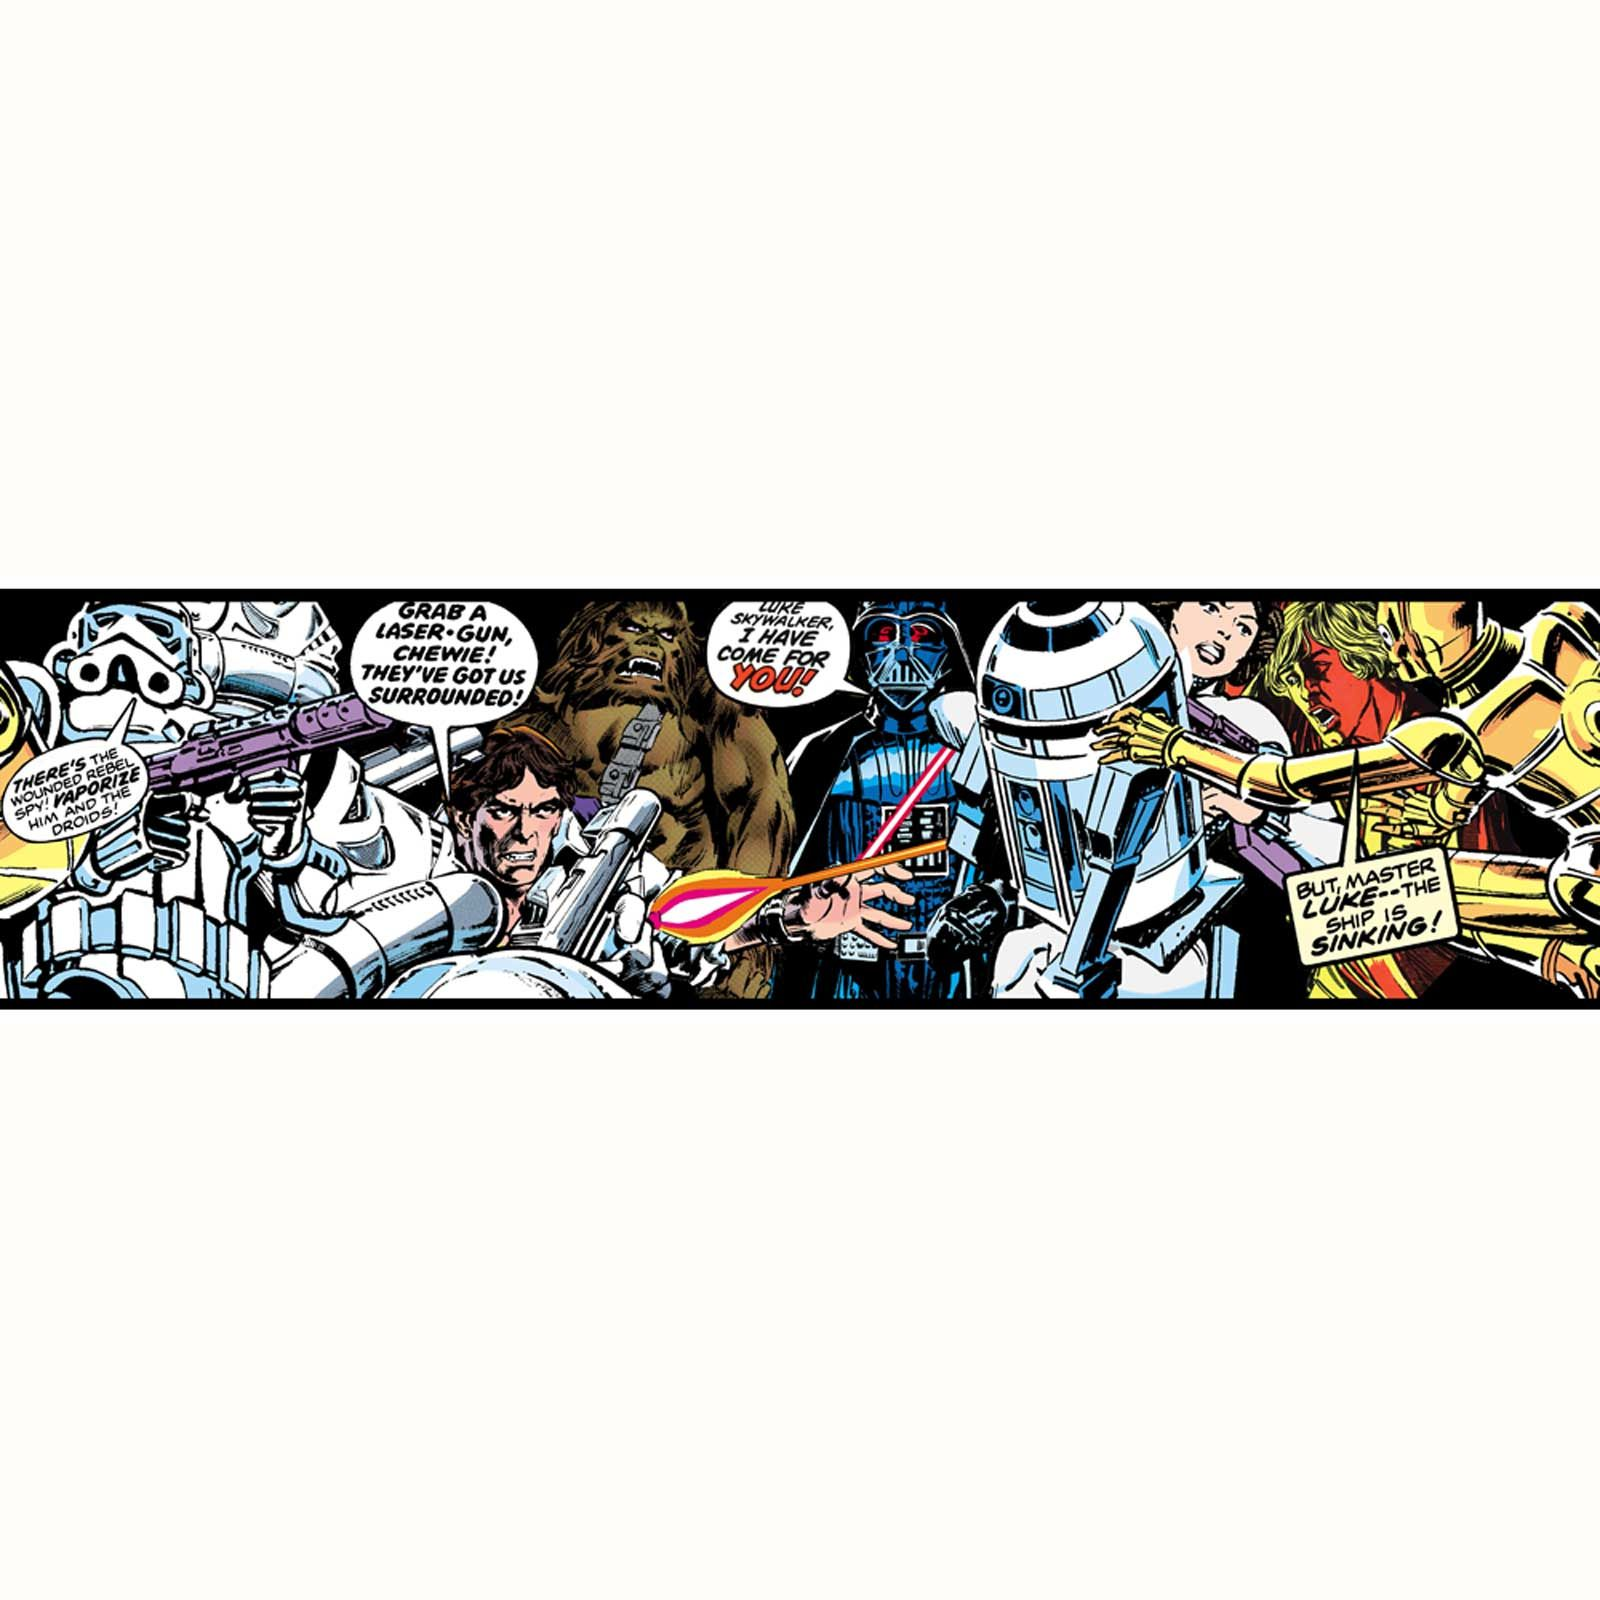 STAR WARS WALLPAPER AND BORDERS CHILDRENS BEDROOM DECOR OFFICIAL 1600x1600